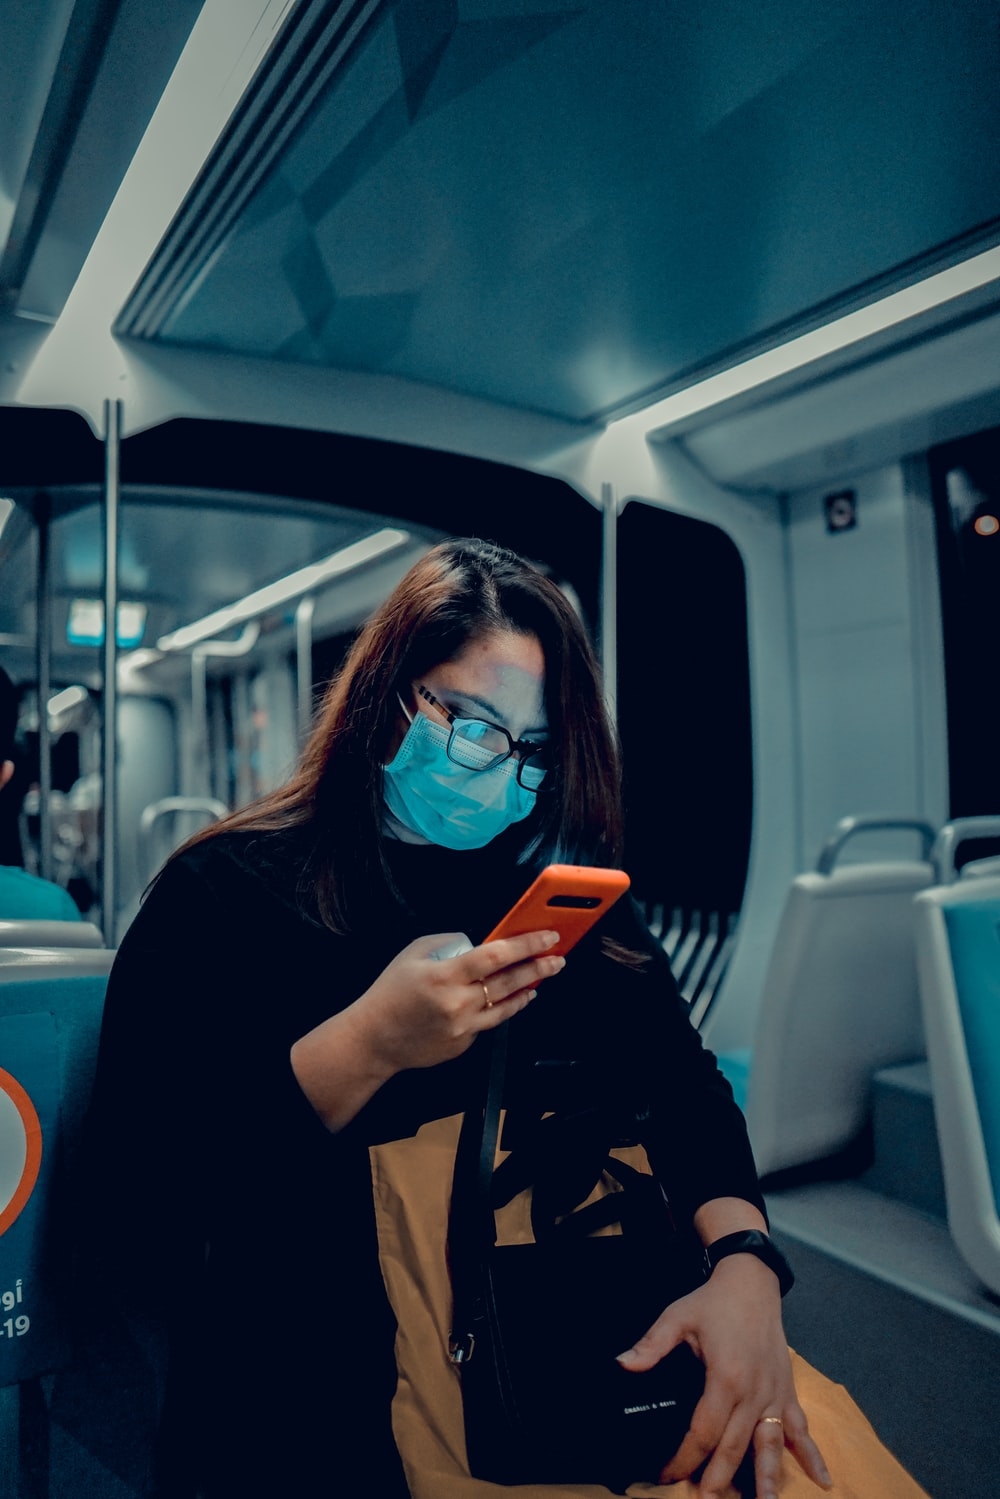 woman in black jacket wearing blue sunglasses holding iphone